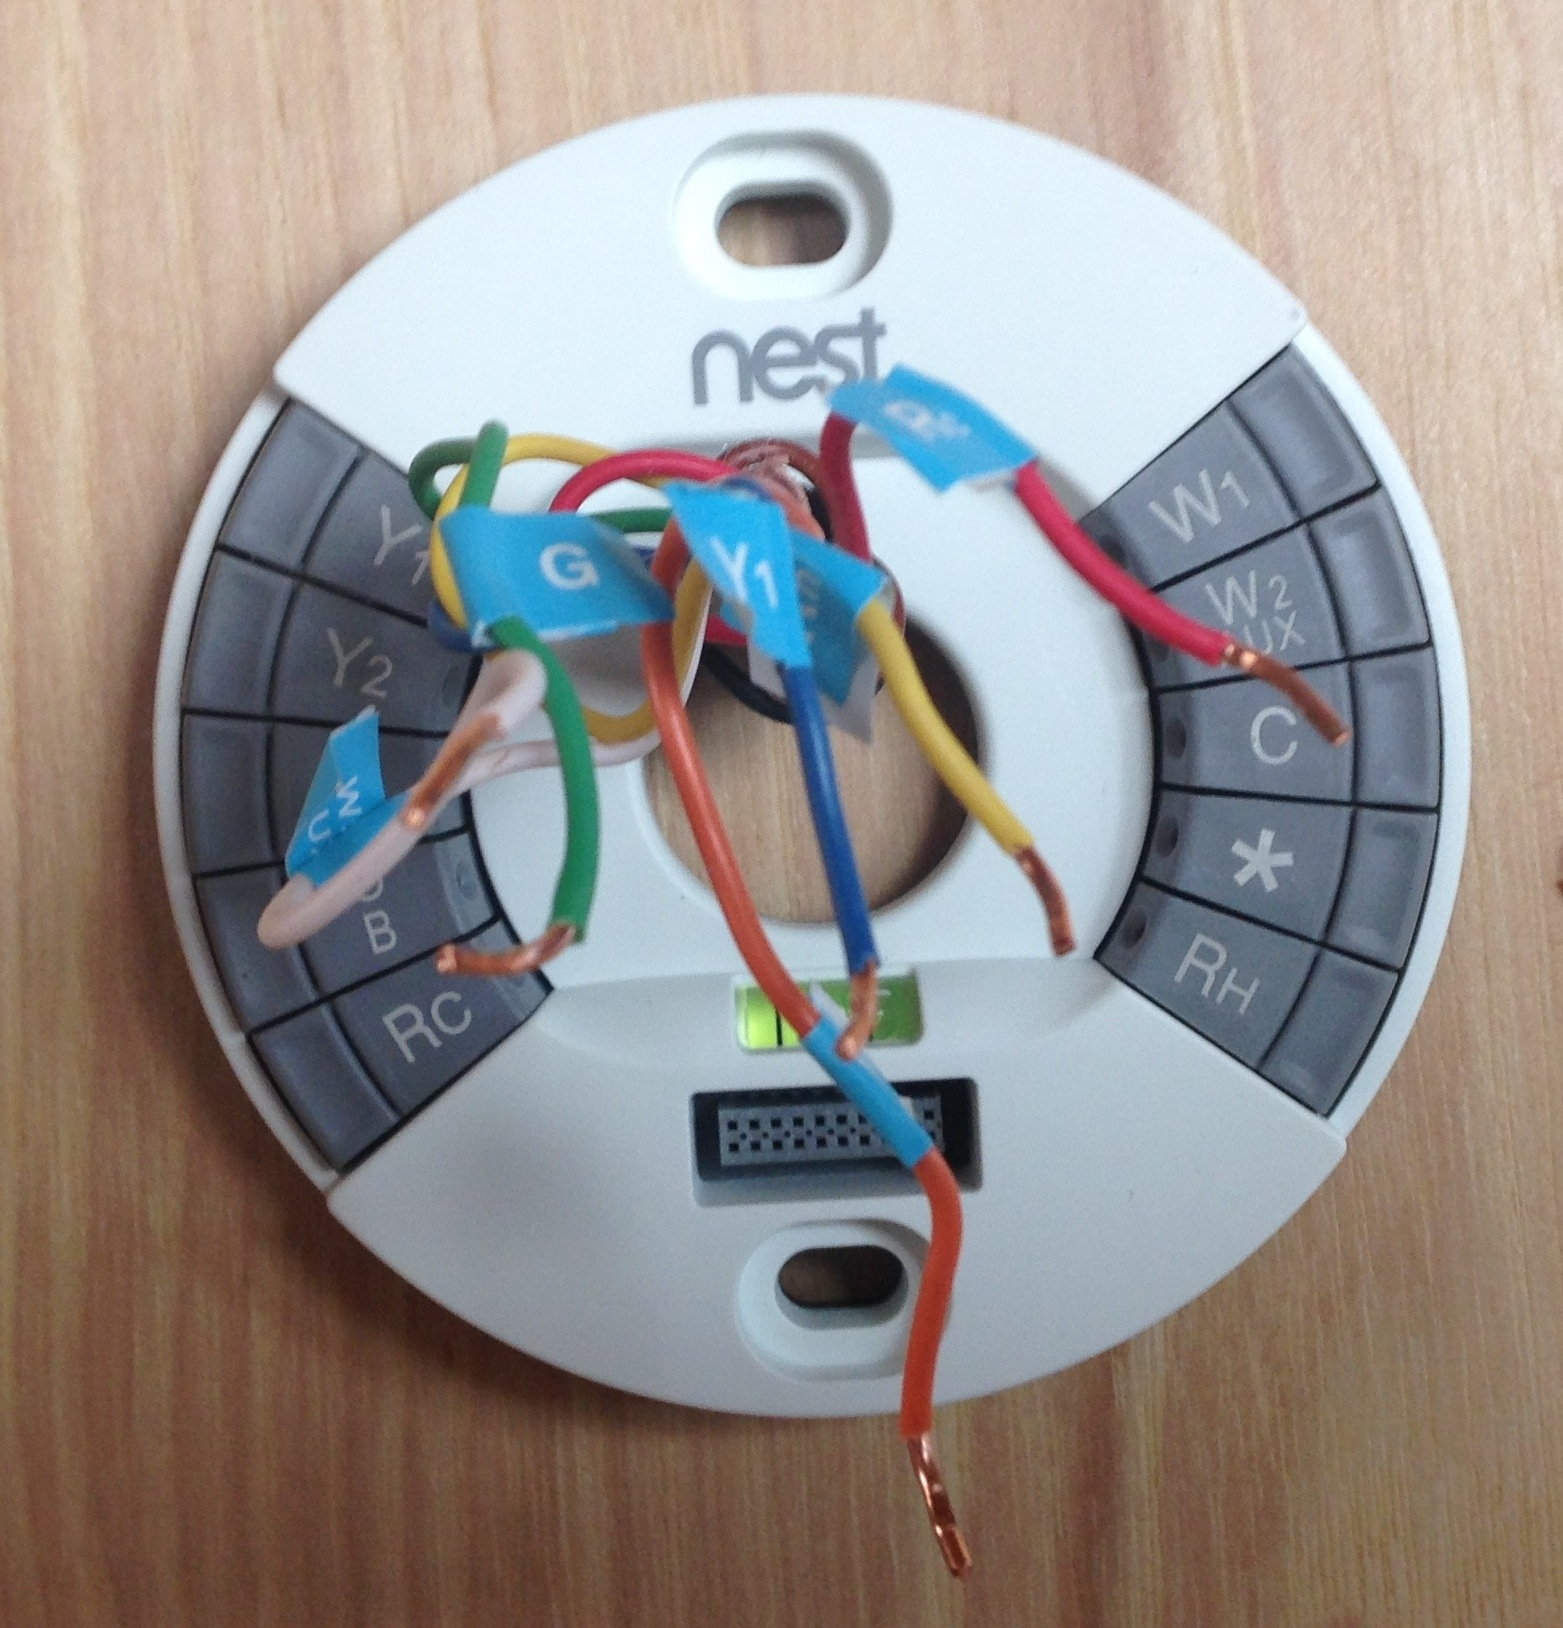 The Good Looking Nest Thermostat Saves You Money Wiring Why Is My Not Working With A C Home Install Video Above Shows How To Label